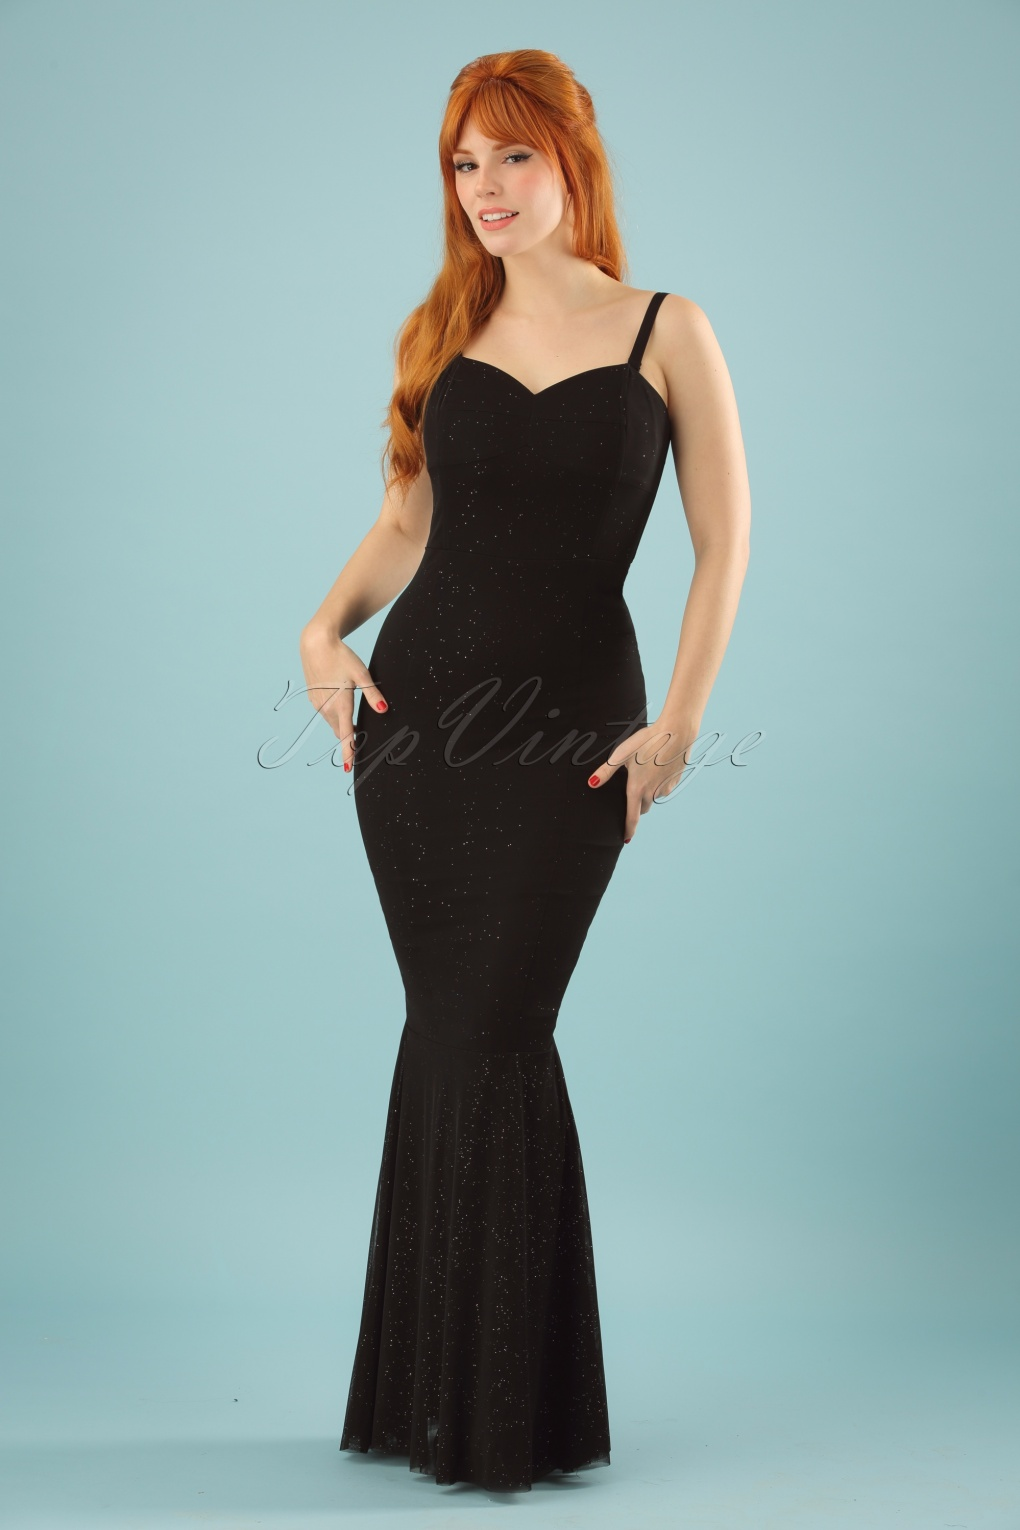 1950s Prom Dresses, Formal Dresses and Party Dresses